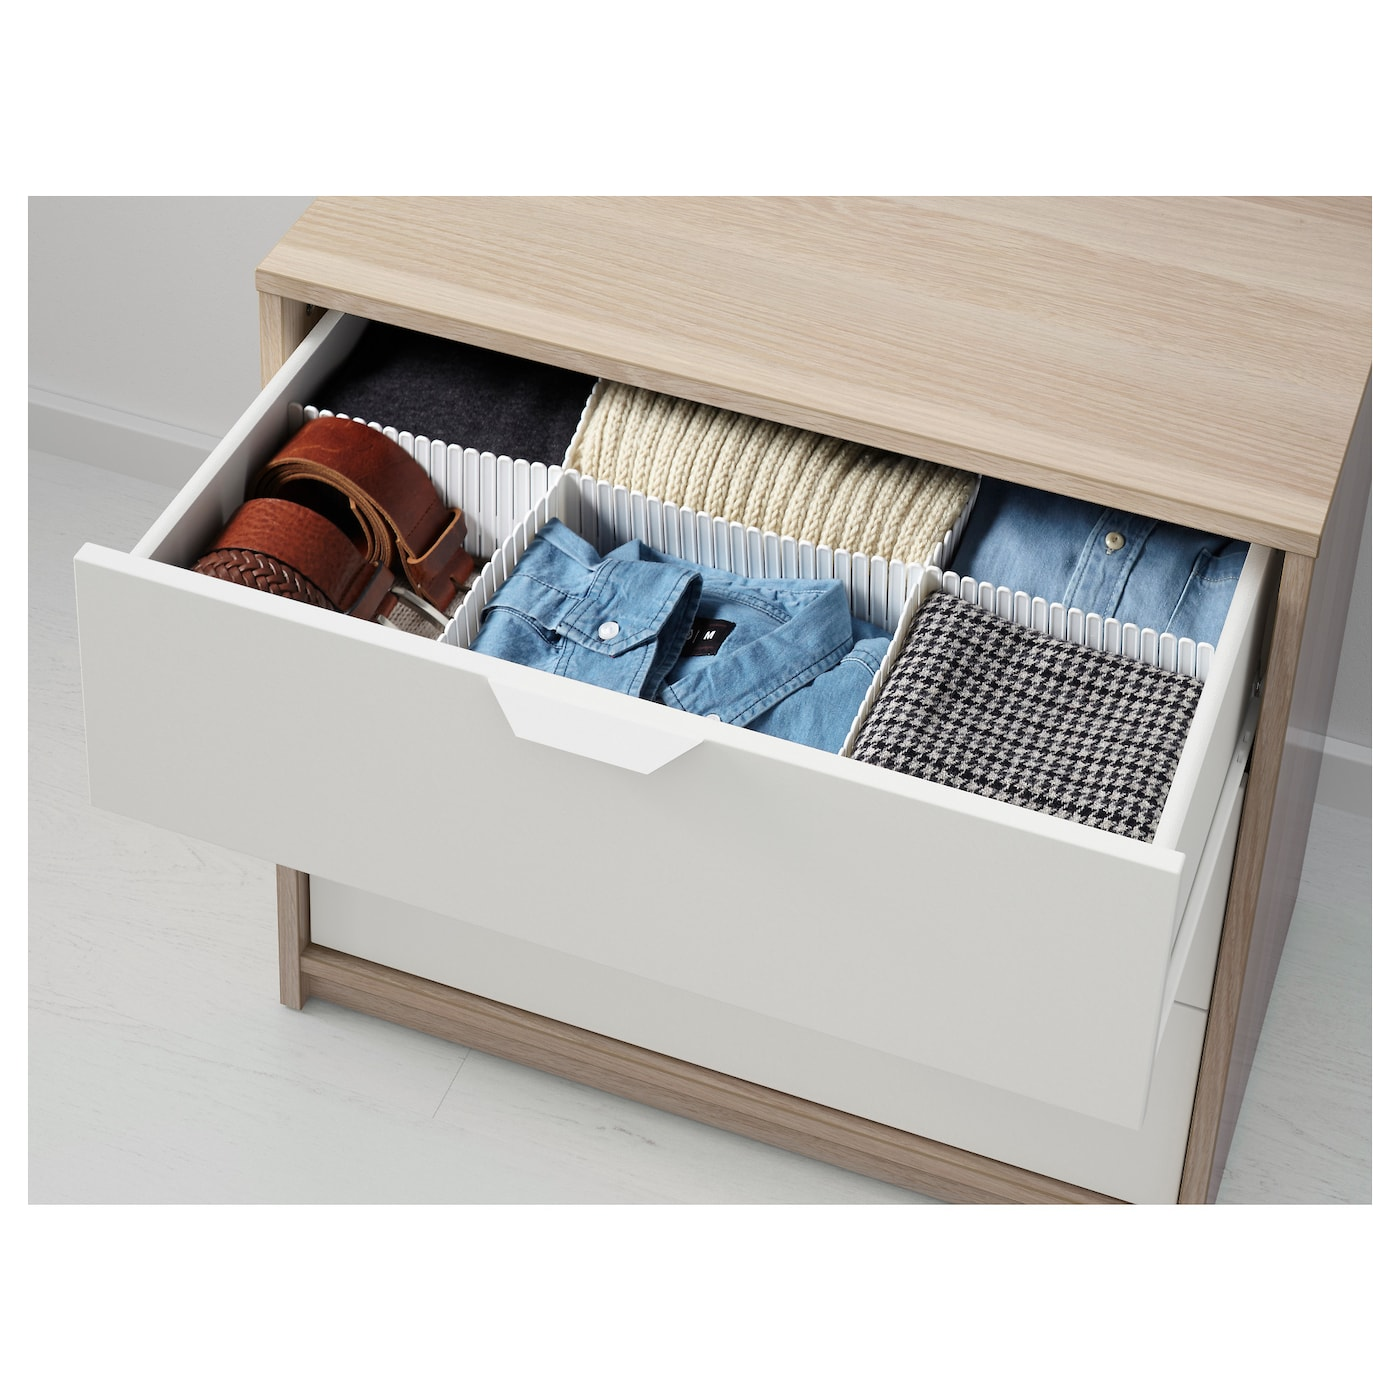 Ikea Shoe Drawers Askvoll Chest Of 3 Drawers White Stained Oak Effect White 70x68 Cm